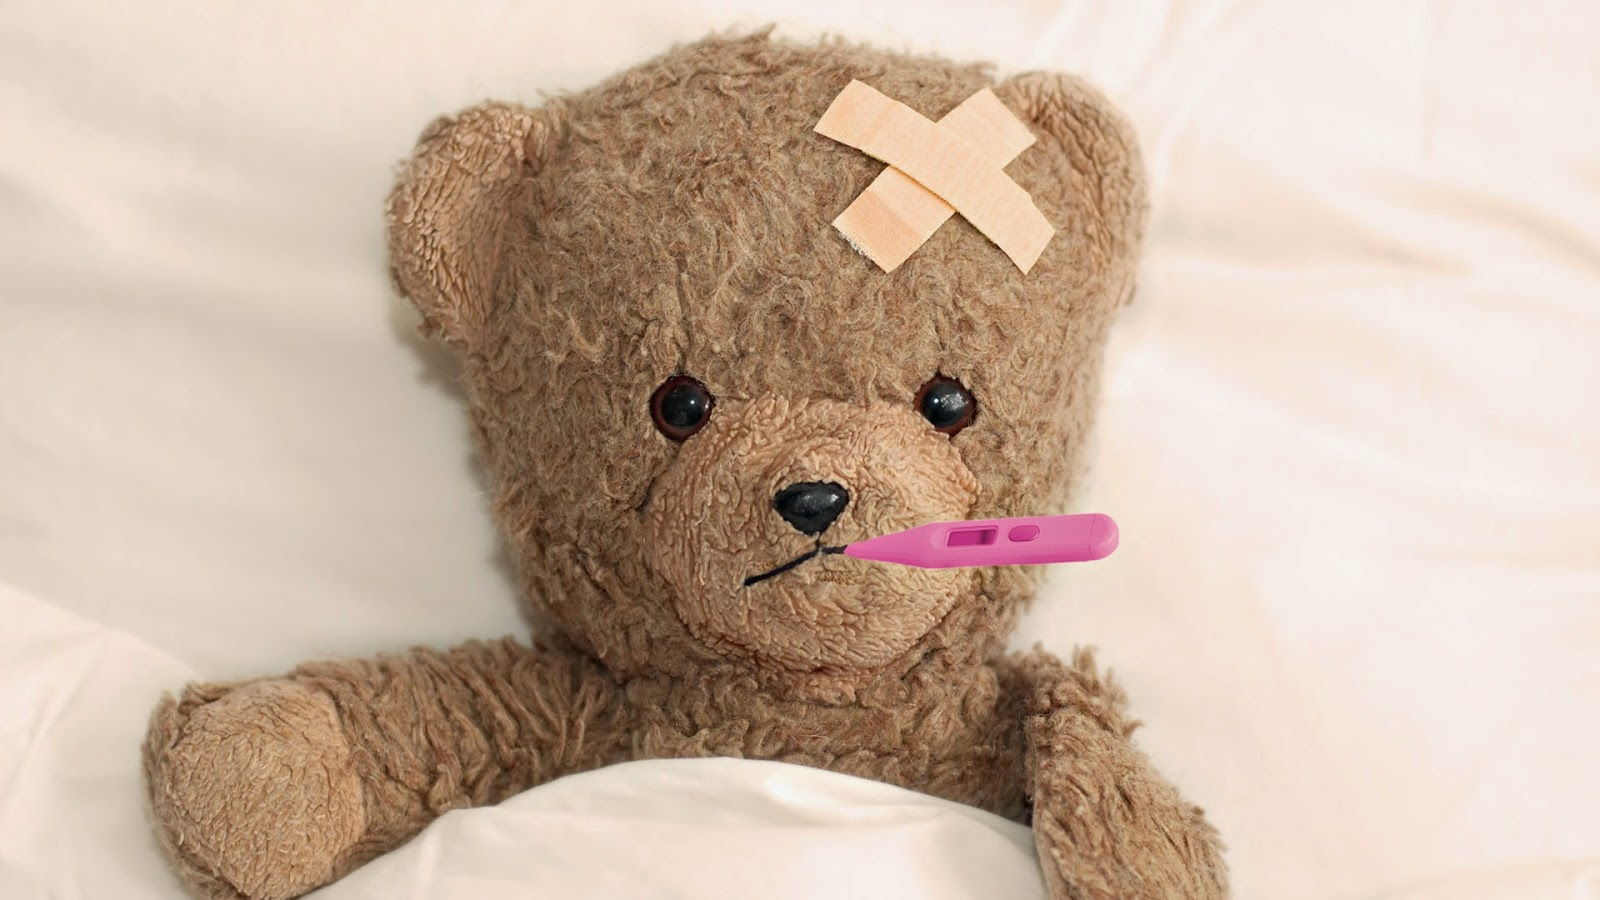 Teddy-get-well-soon-image-1920x1080.jpg